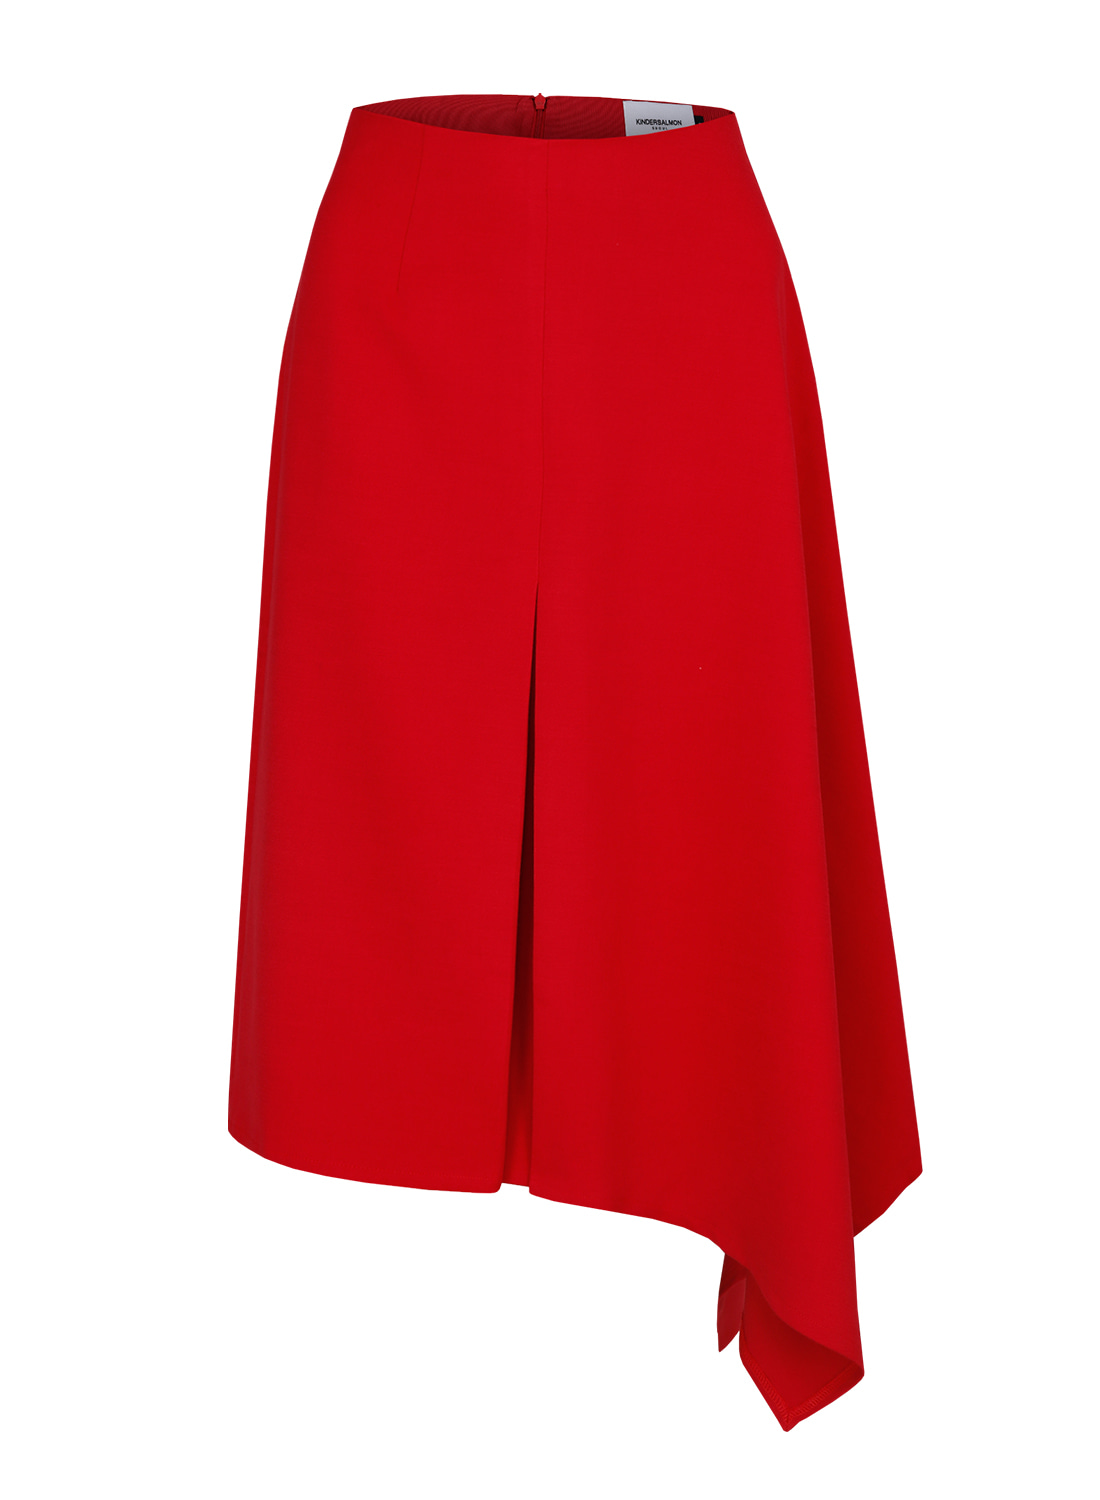 FW17 ASYMMETRY SKIRT RED